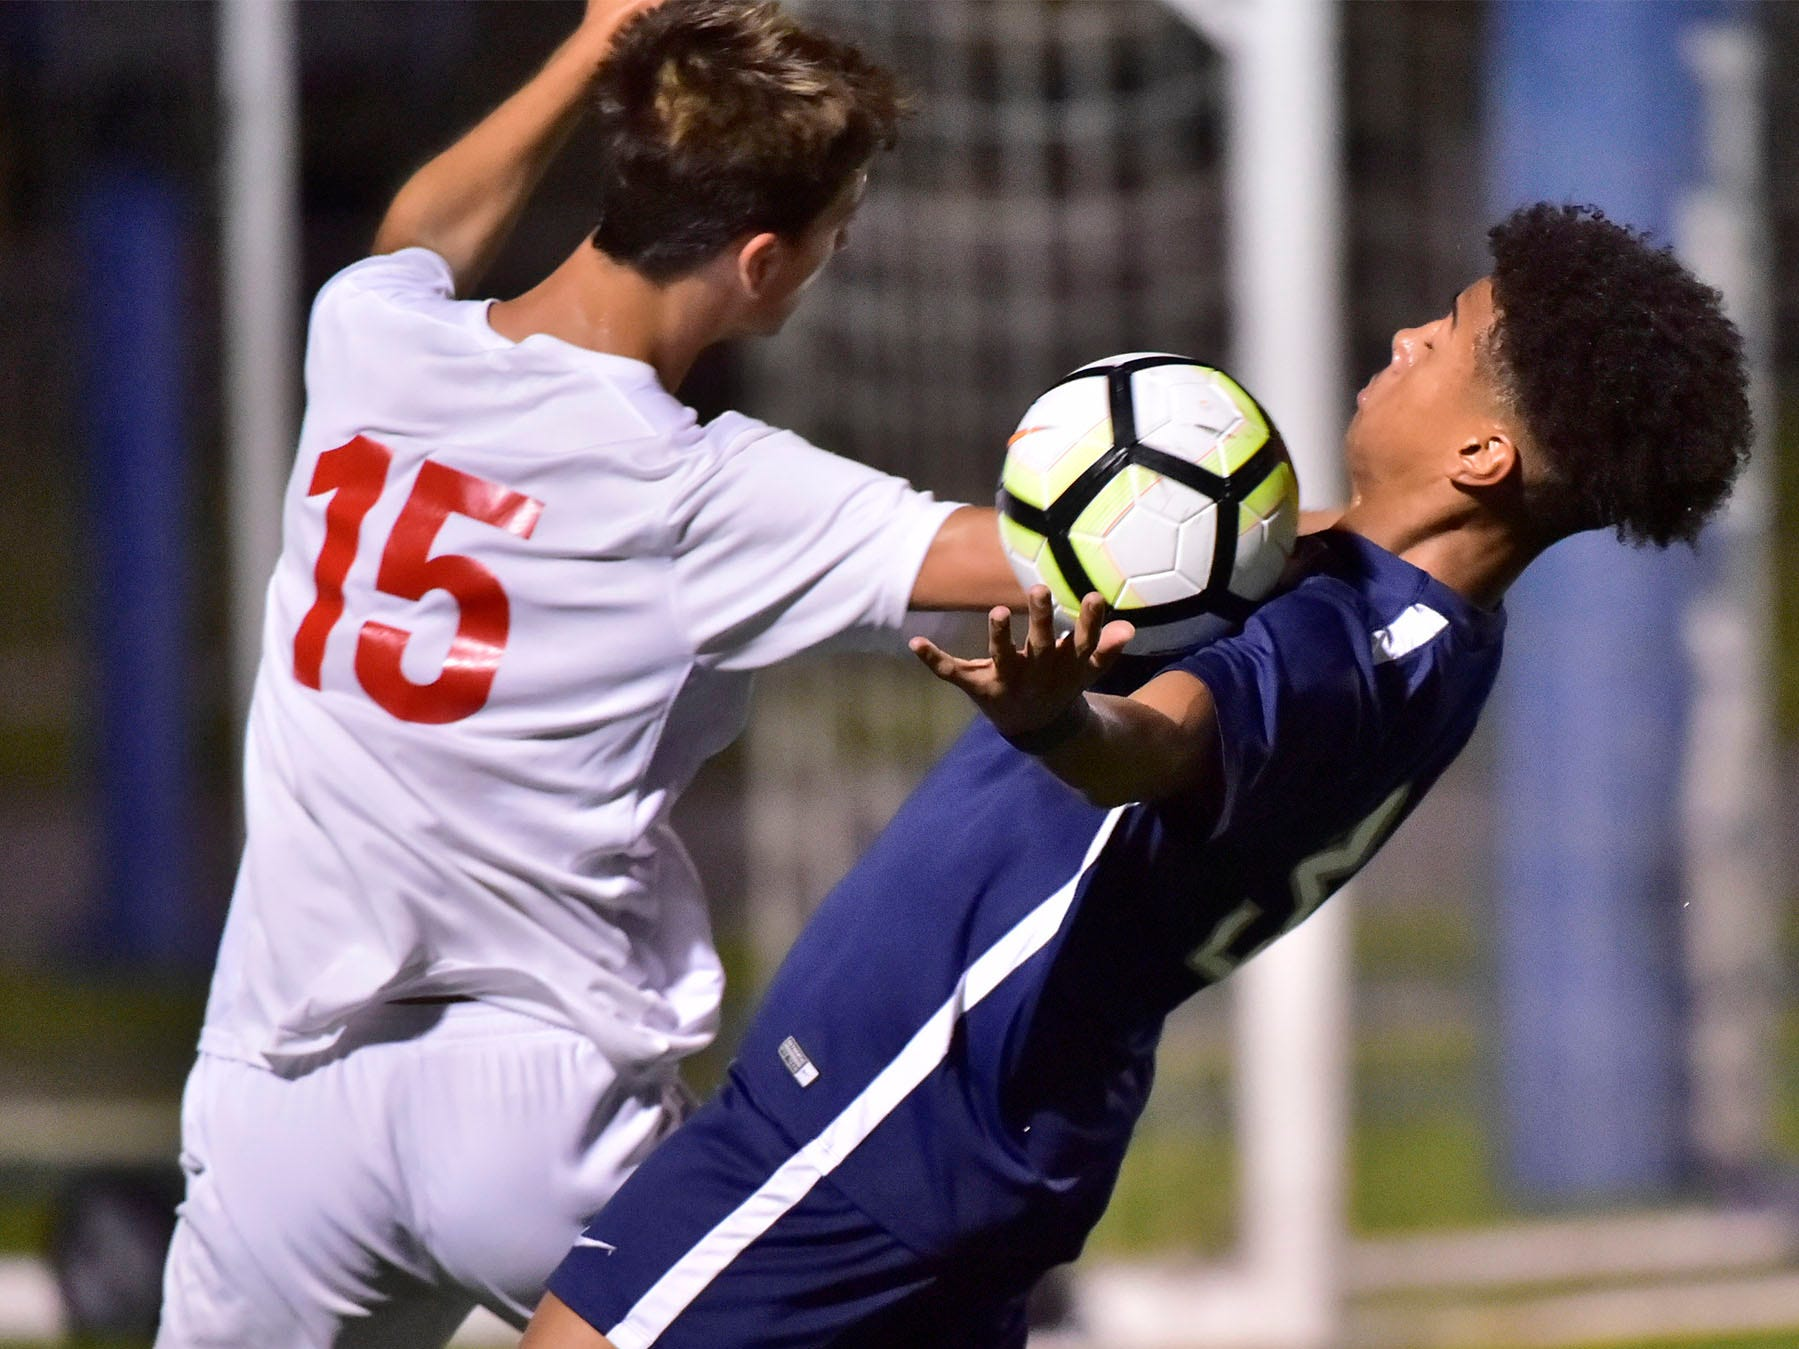 Chambersburg's Ebe Hewitt (3) plays the ball off his chest against CV's Bryar McAllister (15). Chambersburg hosted Cumberland Valley in PIAA soccer on Thursday, Oct. 4, 2018, but dropped a 2-1 match in double overtime.